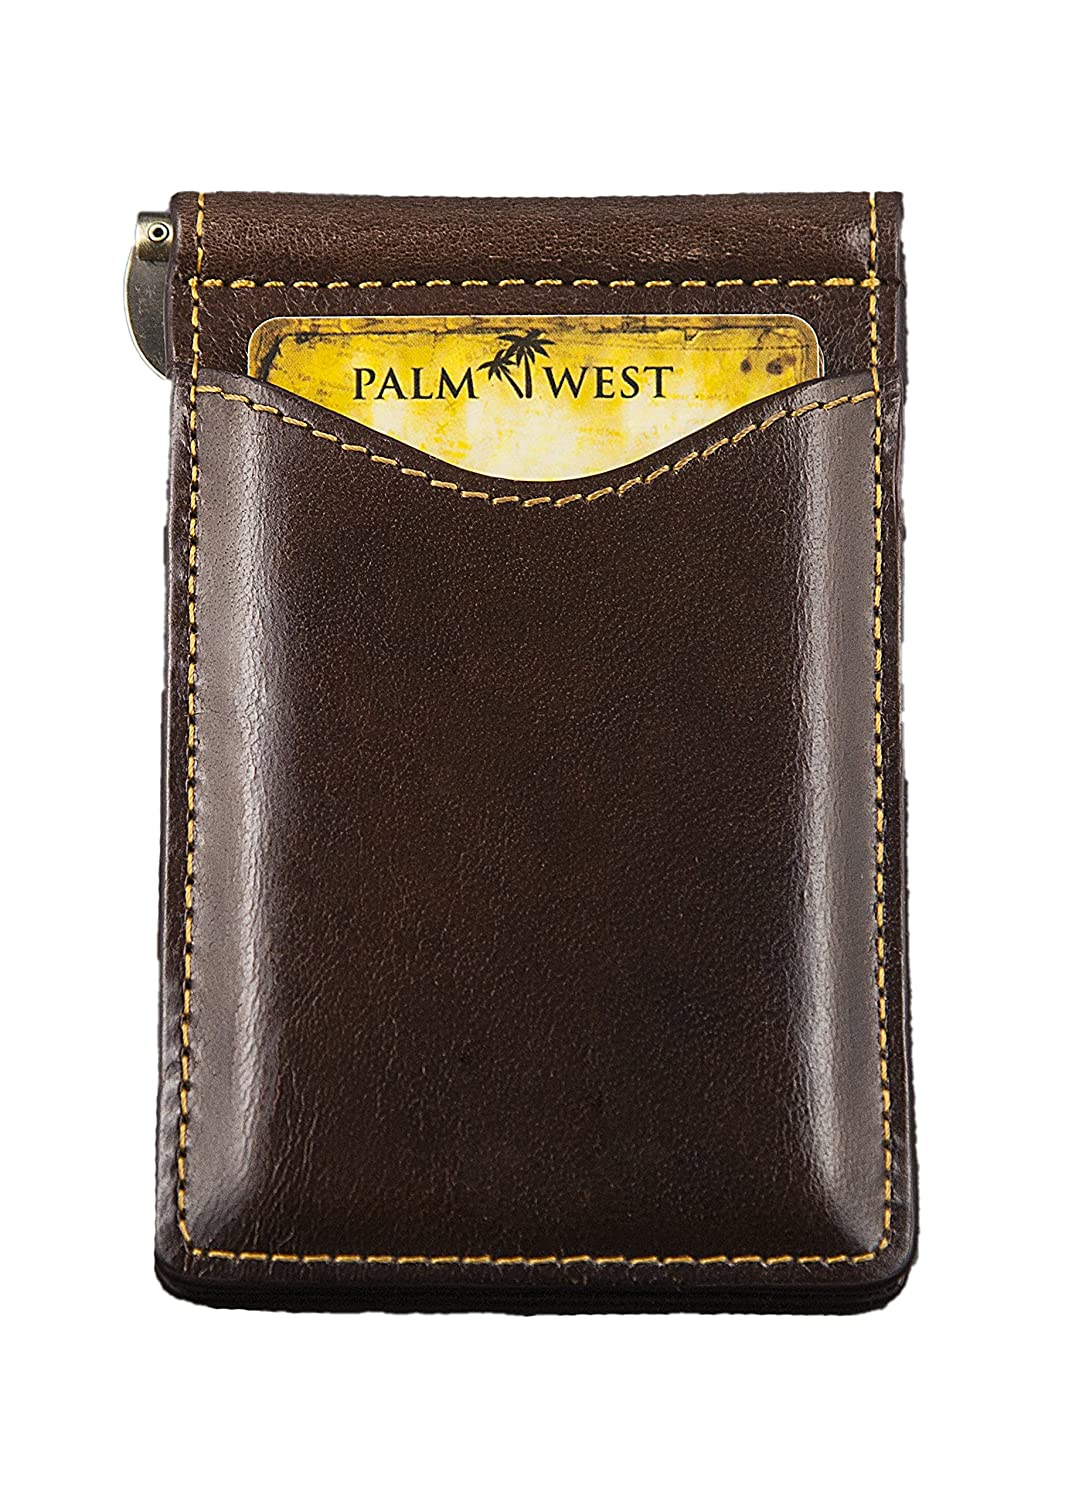 Palm West Slim Wallet with durability style and RFID protection for the man on the move